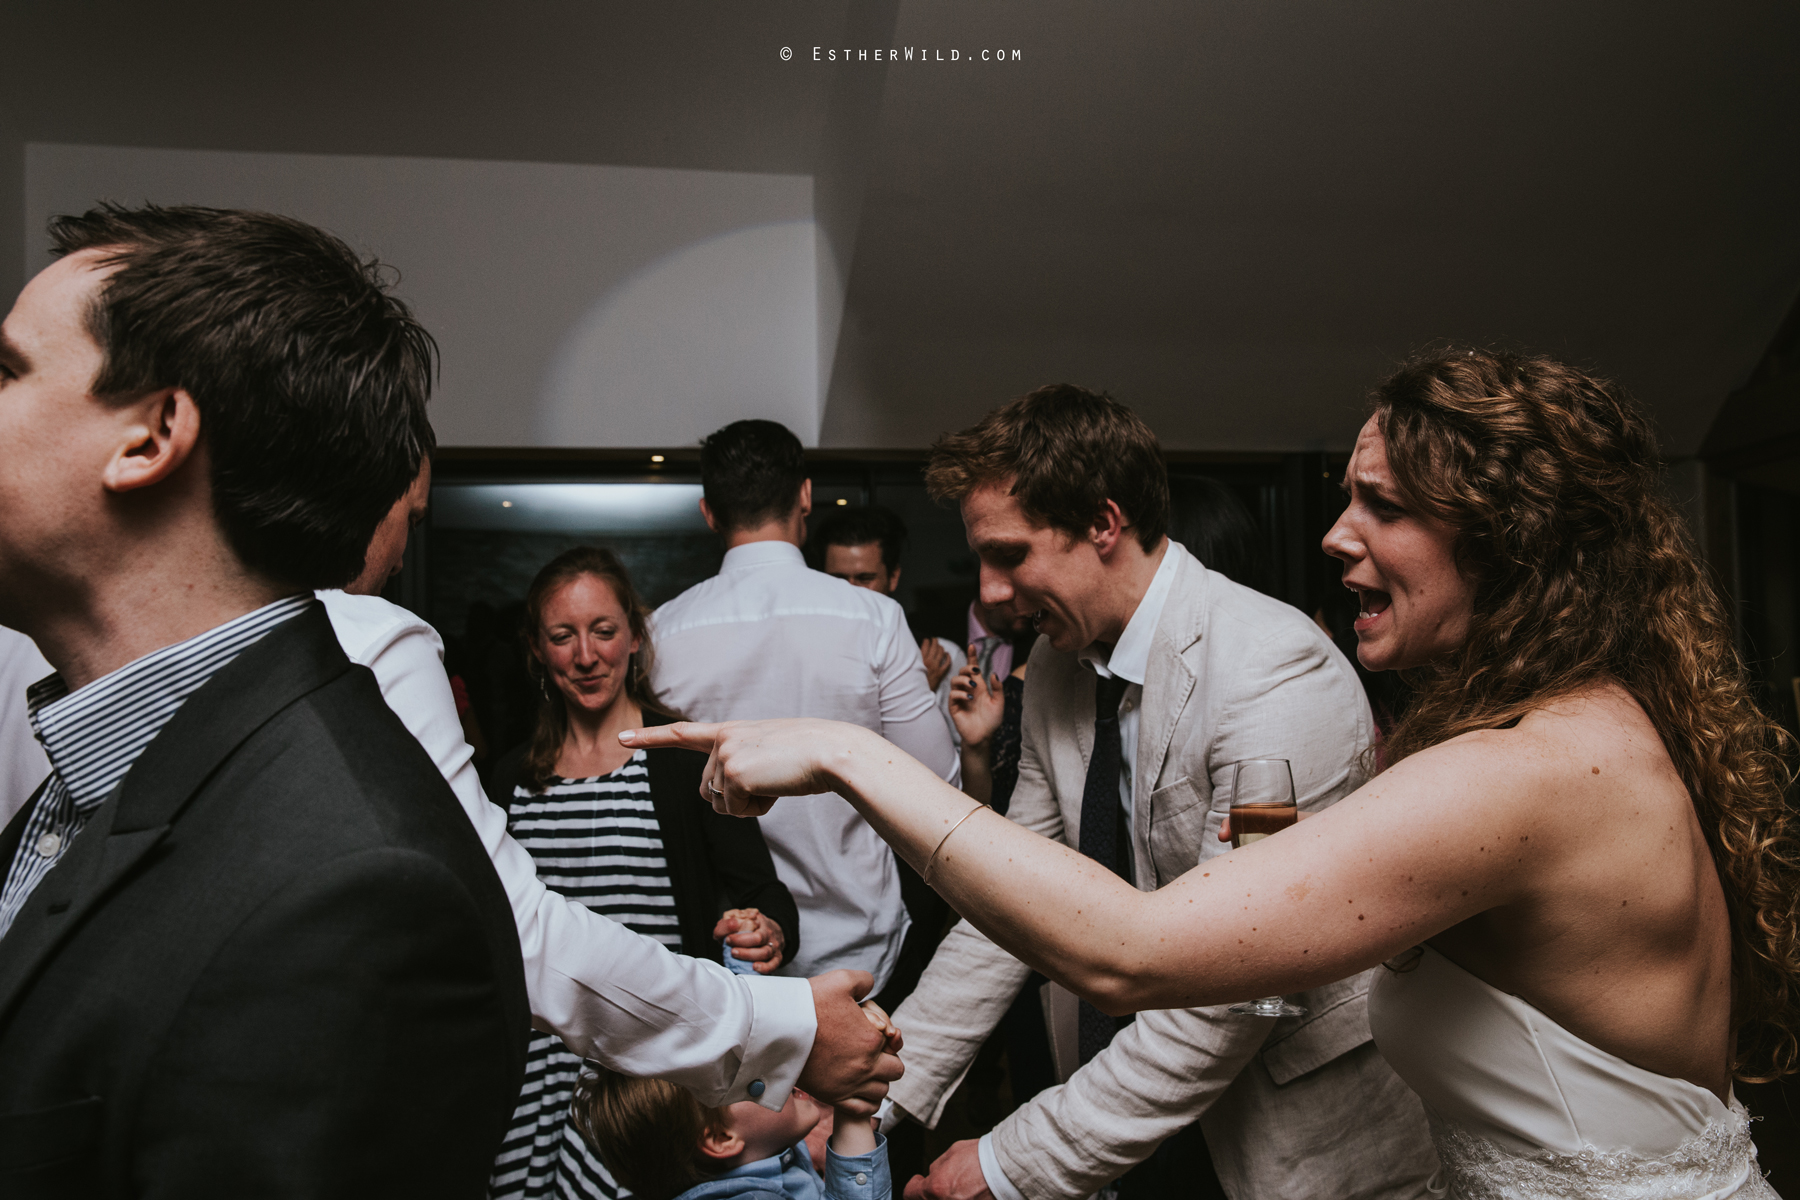 The_BoatHouse_Wedding_Venue_Ormesby_Norfolk_Broads_Boat_Wedding_Photography_Esther_Wild_Photographer_IMG_3882.jpg